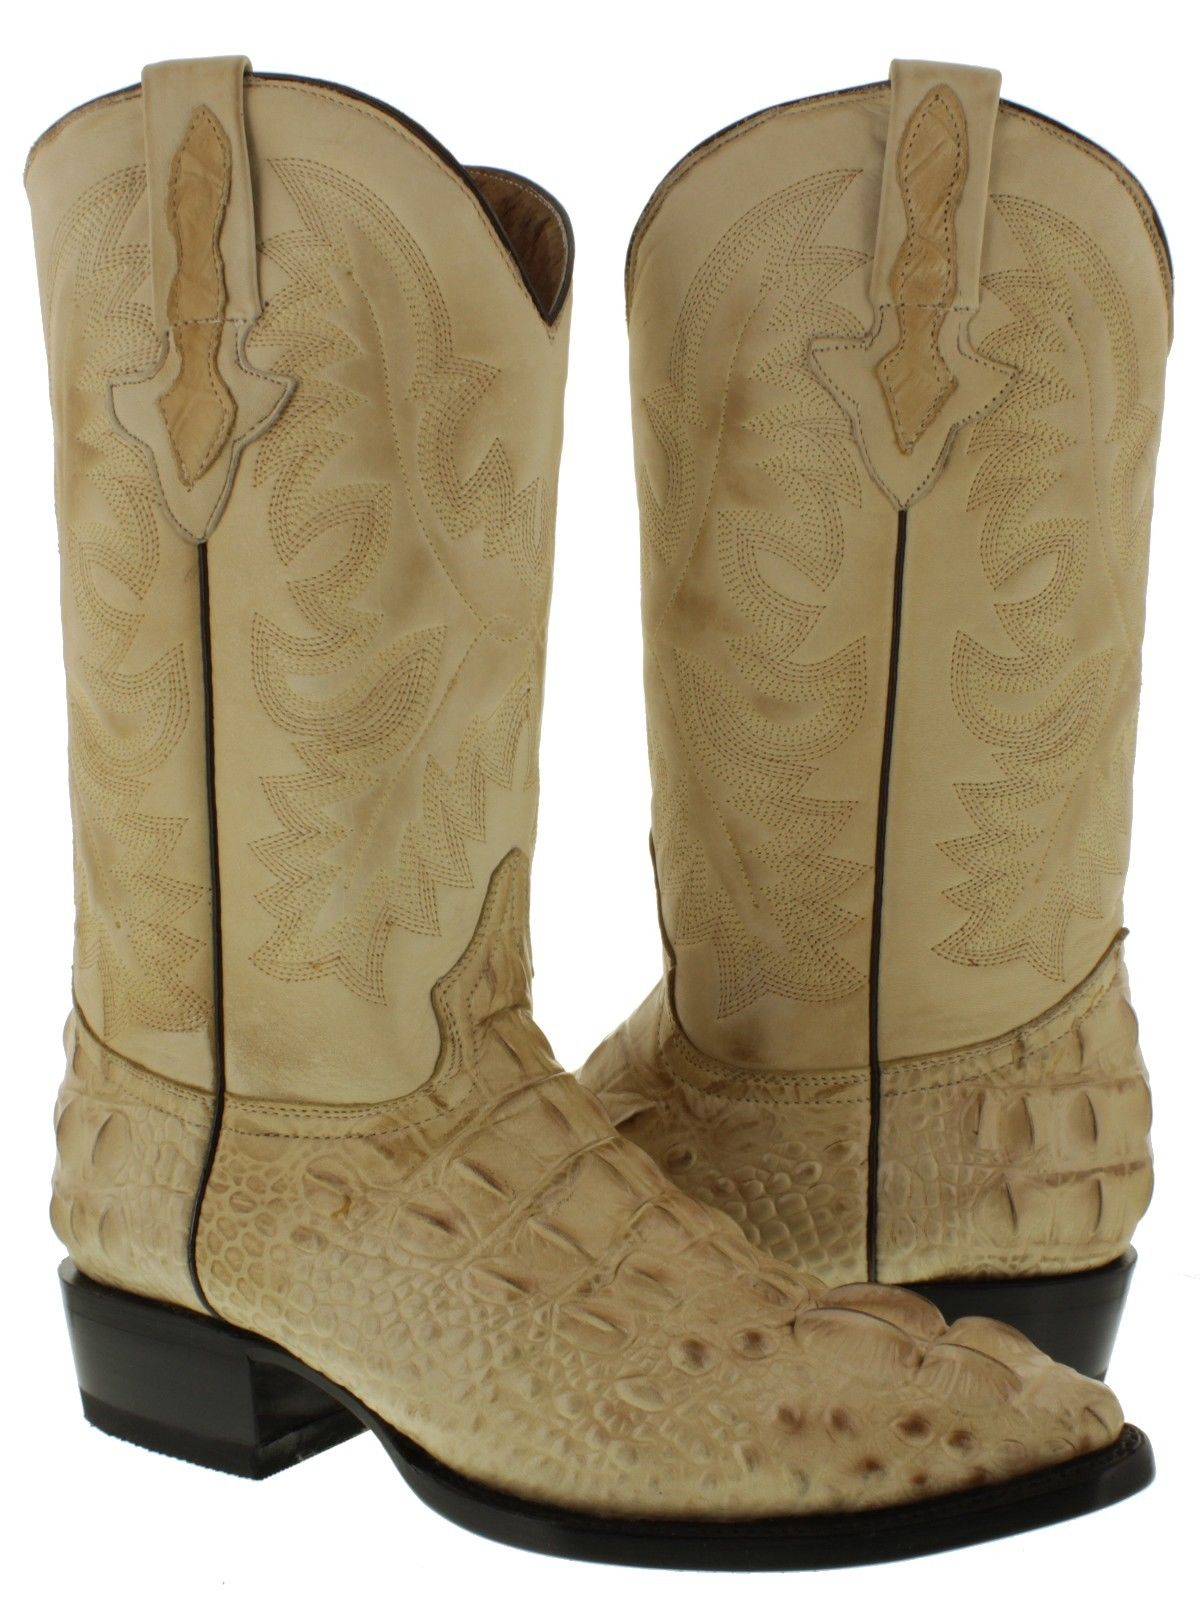 Mens New Sand Crocodile Alligator Tail Western Ranch Cowboy Leather J Toe Boots